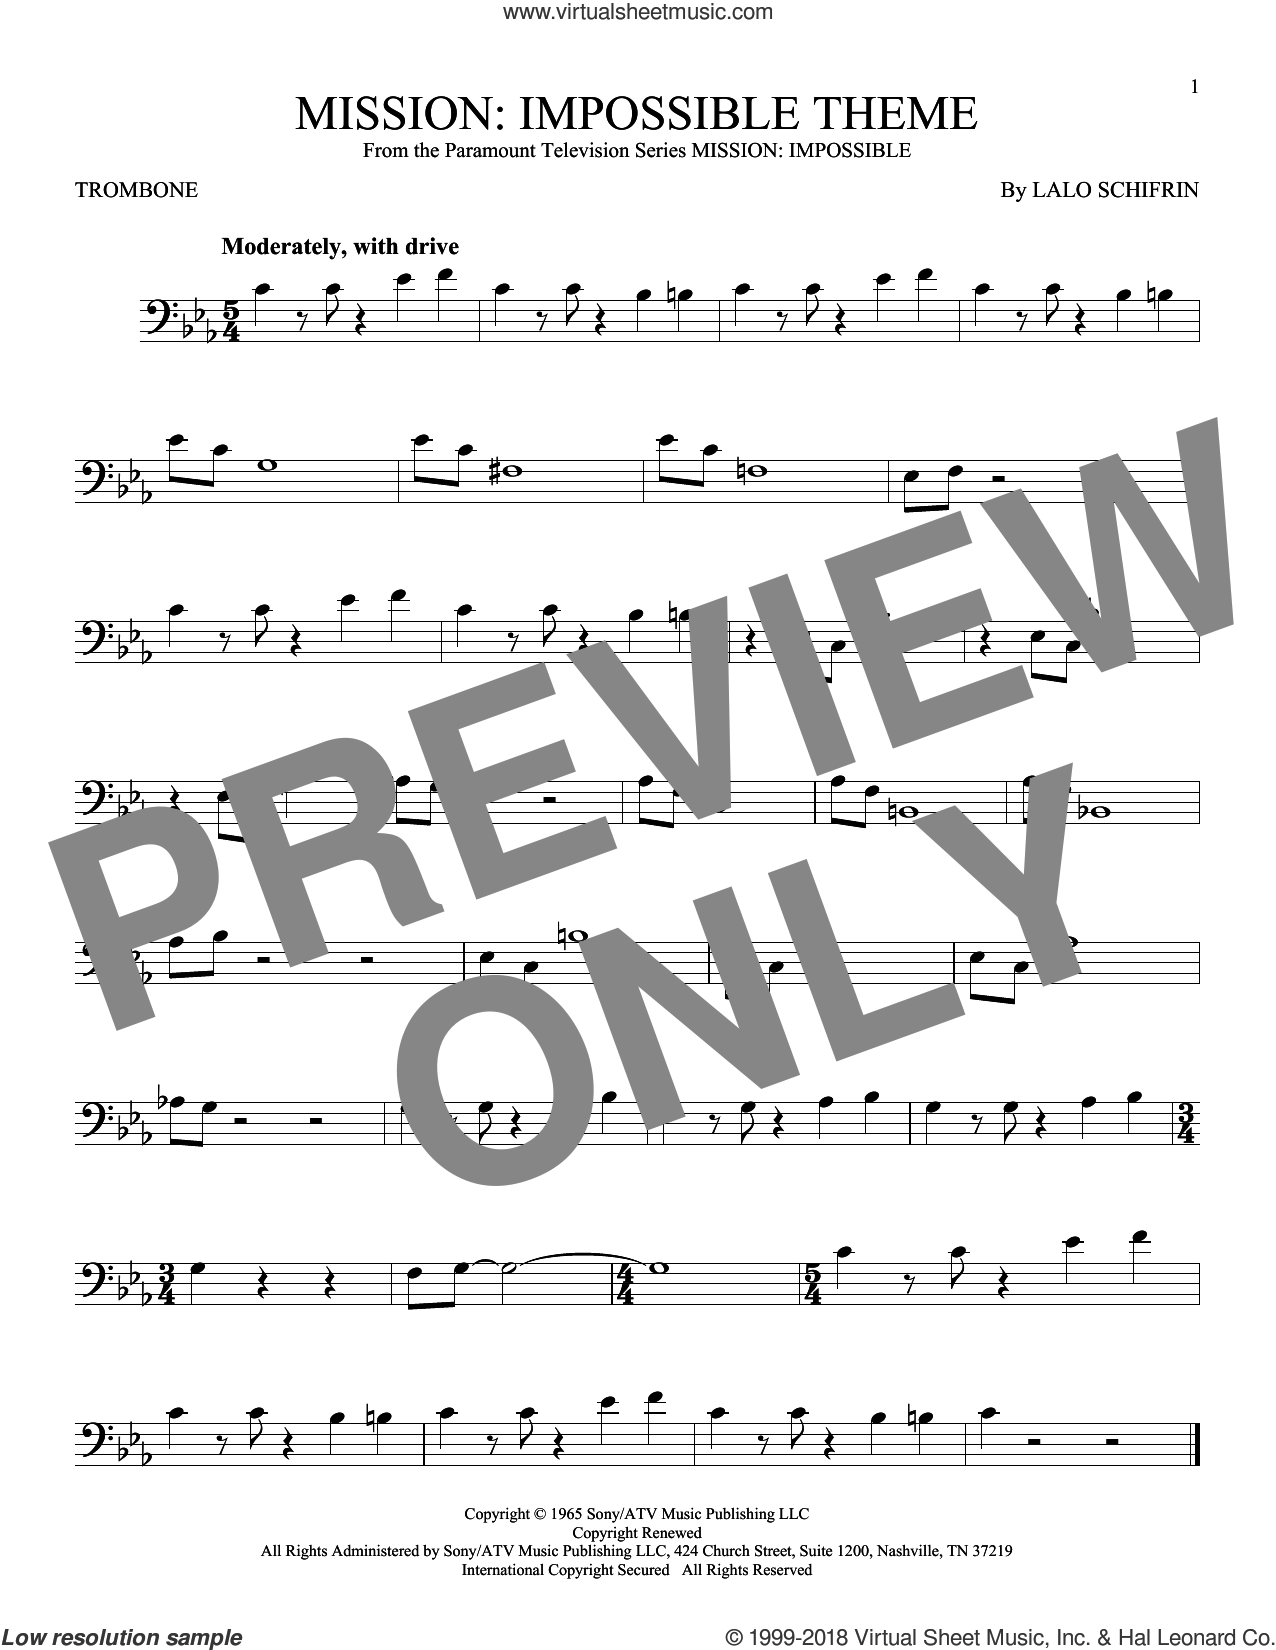 Mission: Impossible Theme sheet music for trombone solo by Lalo Schifrin, intermediate. Score Image Preview.